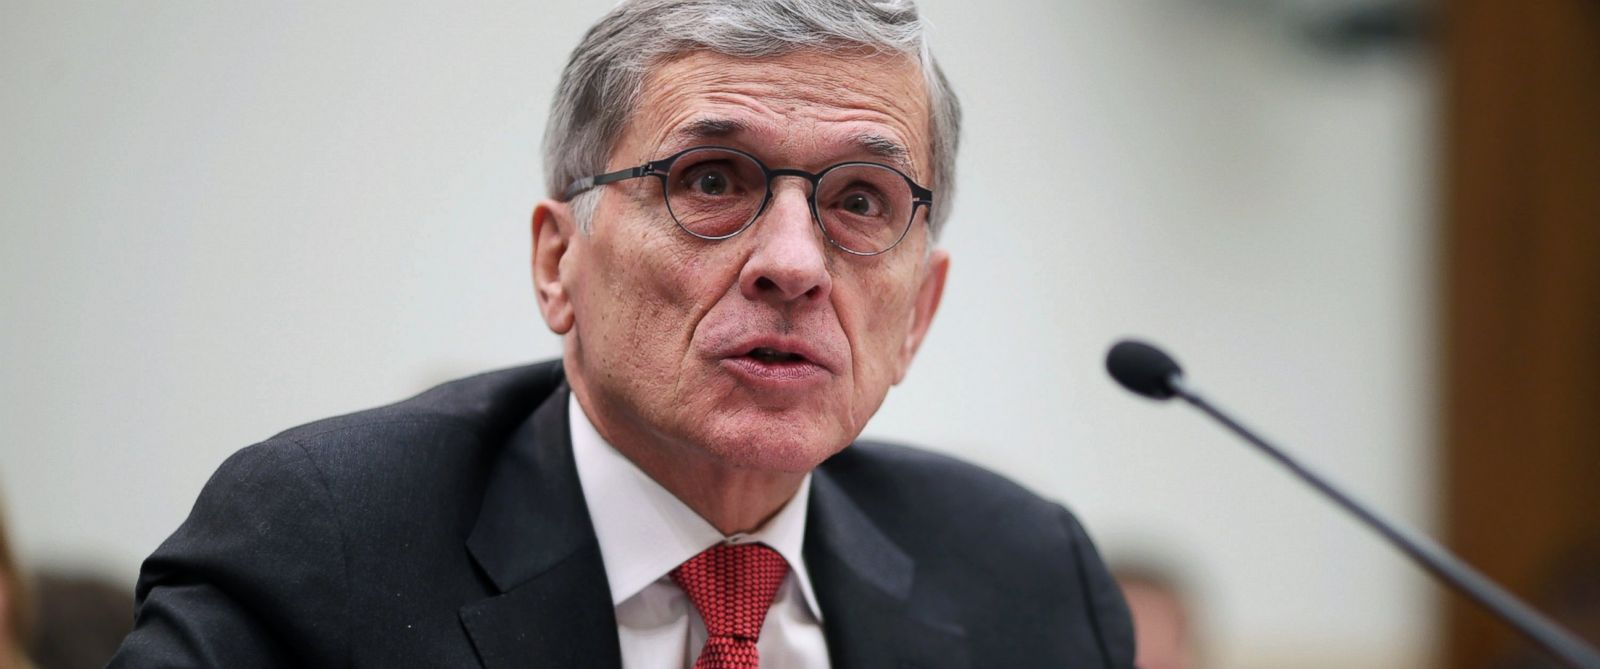 PHOTO: Federal Communications Commission Chairman Tom Wheeler testifies before the House Judiciary Committee in the Rayburn House Office Building on Capitol Hill, March 25, 2015, in Washington.